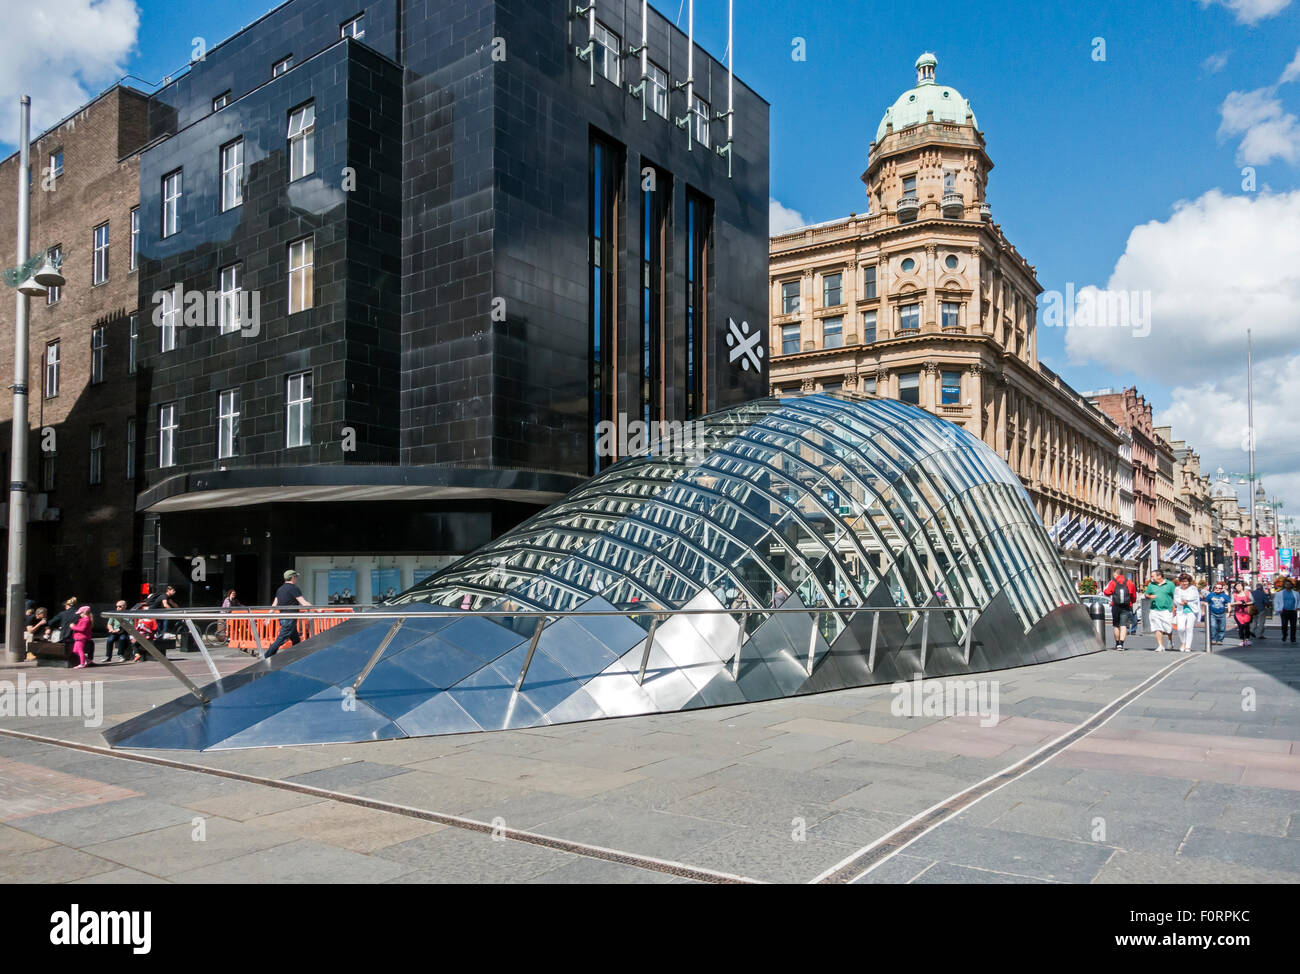 Rear view of New north end glass entrance to St. Enoch subway station at St. Enoch Square in Glasgow Scotland - Stock Image